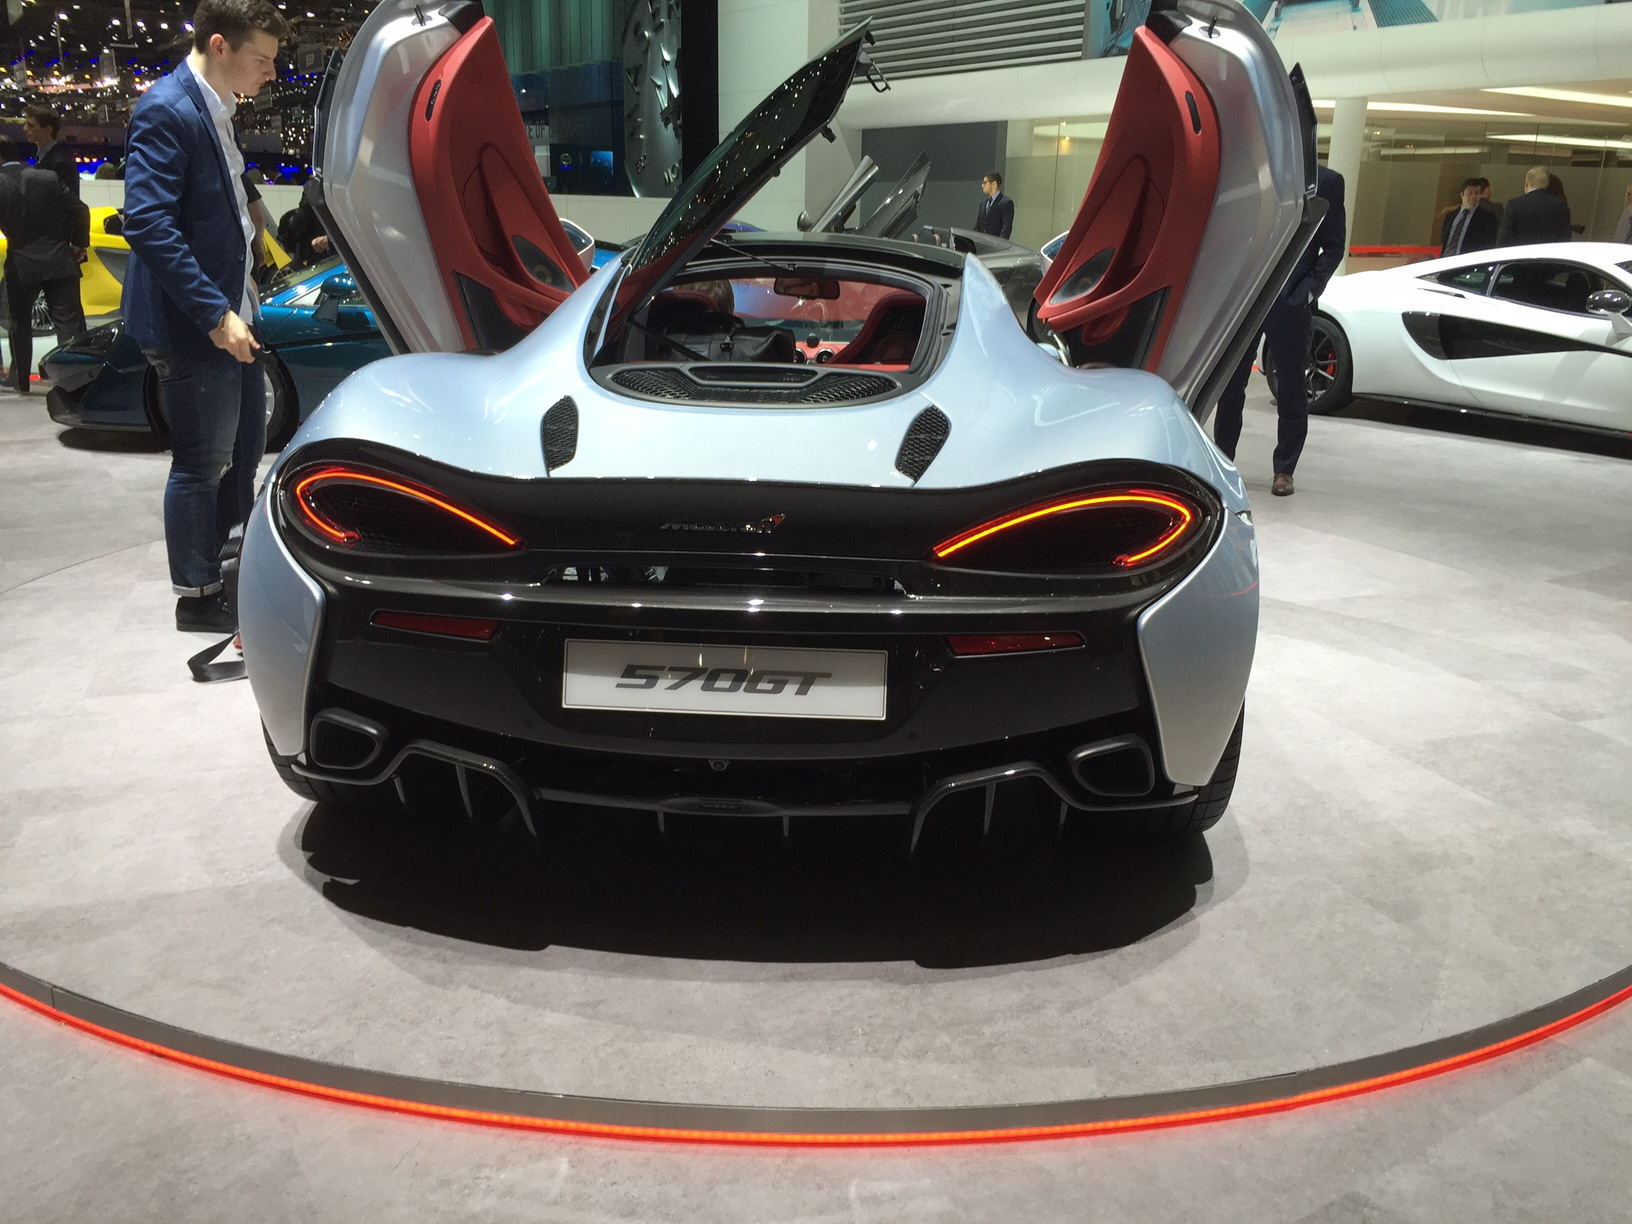 McLaren 570GT at the Geneva Motor Show 2016